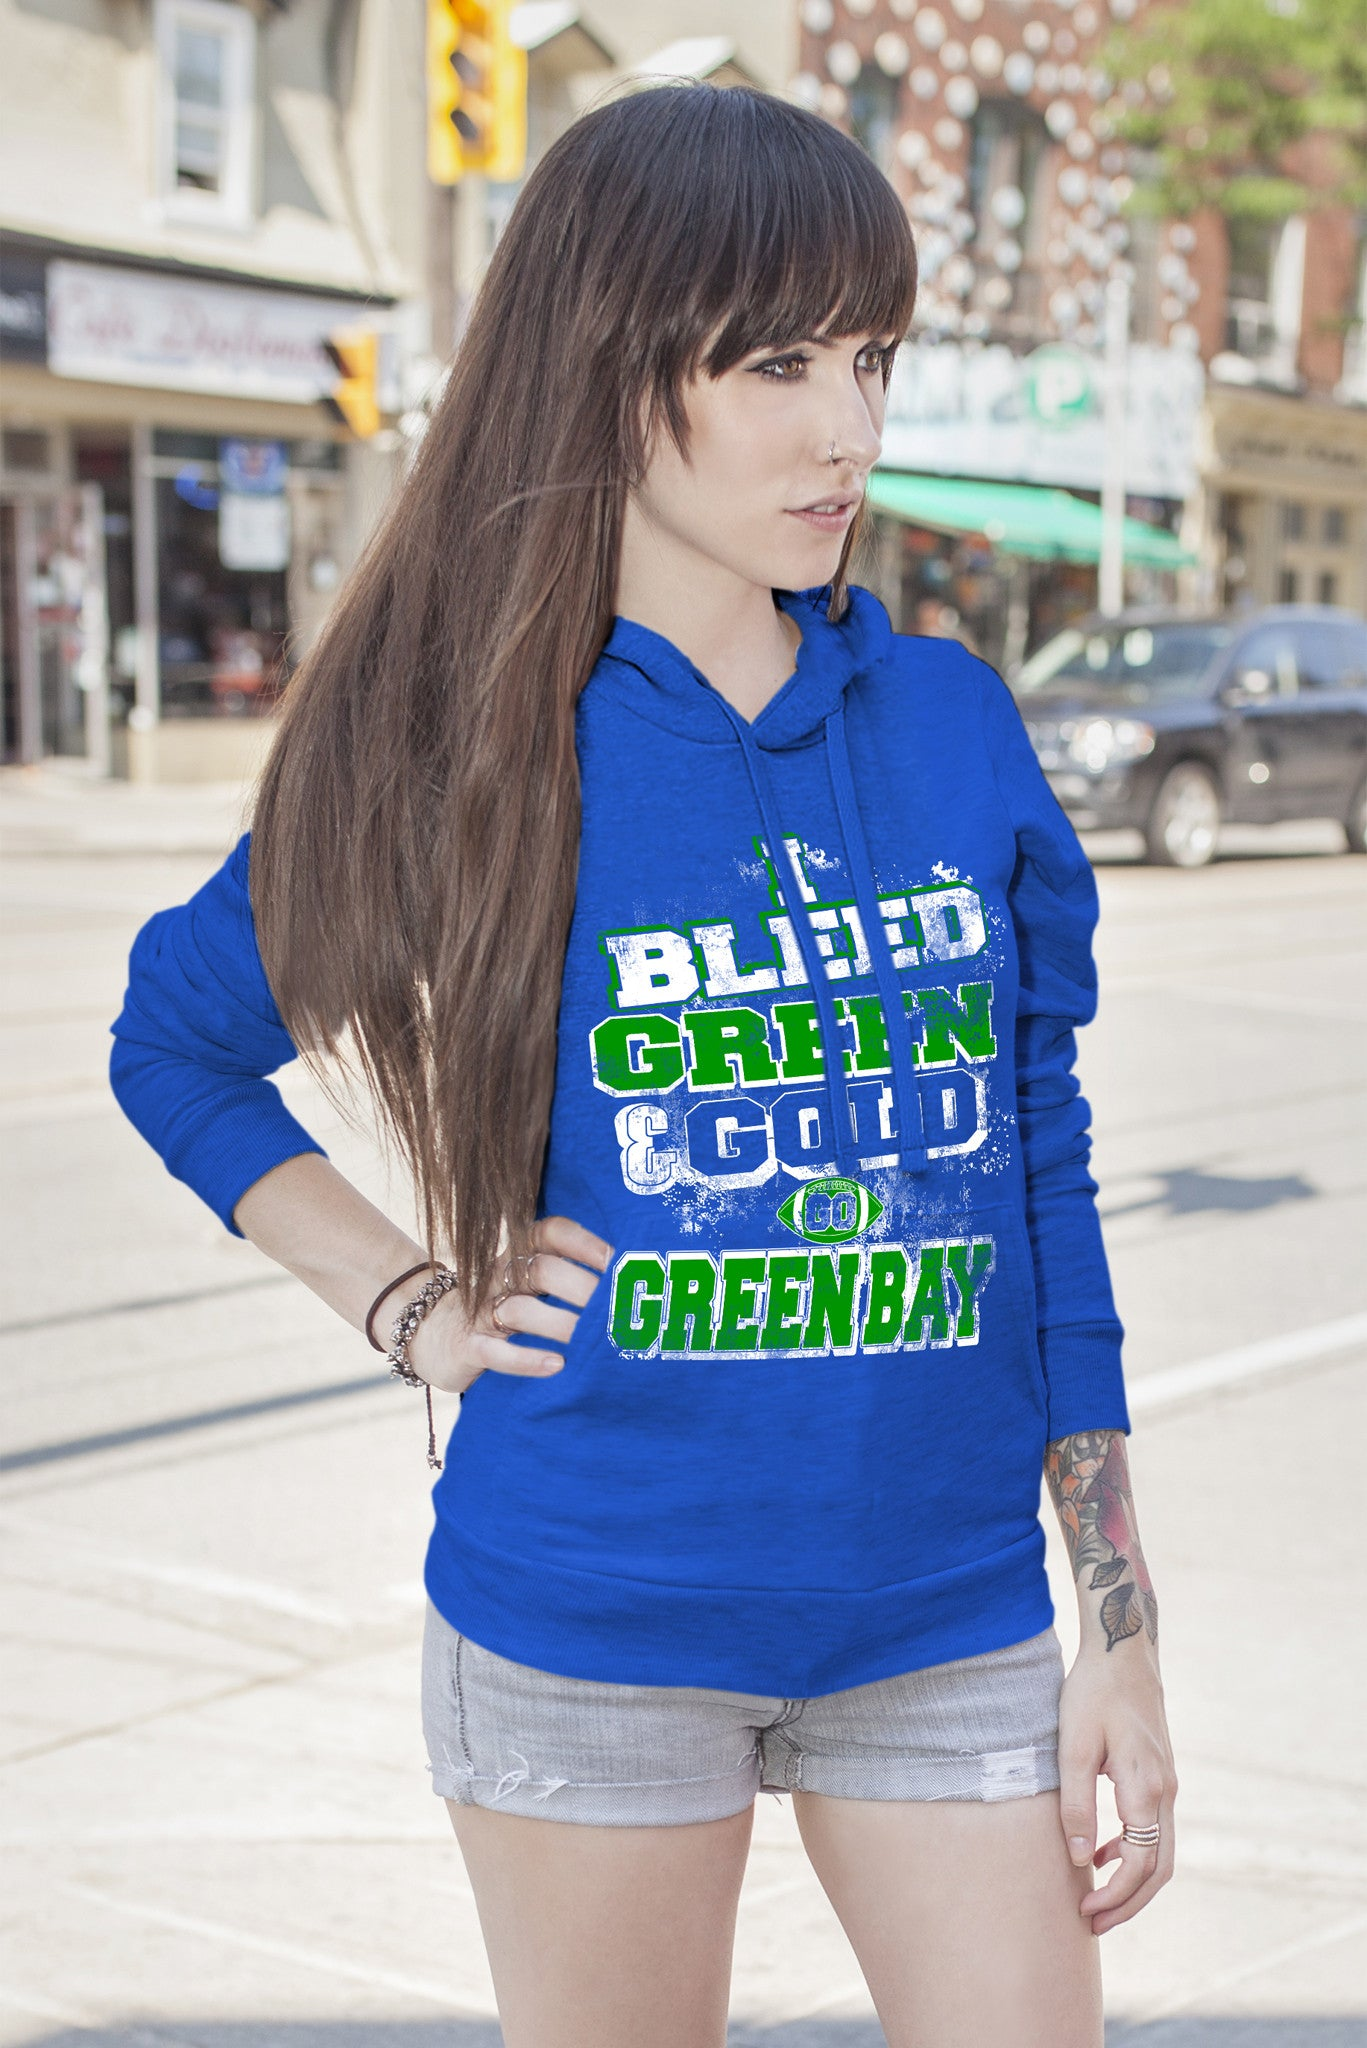 FunkyShirty Bleed Green and Gold-Greenbay (Women)  Creative Design - FunkyShirty